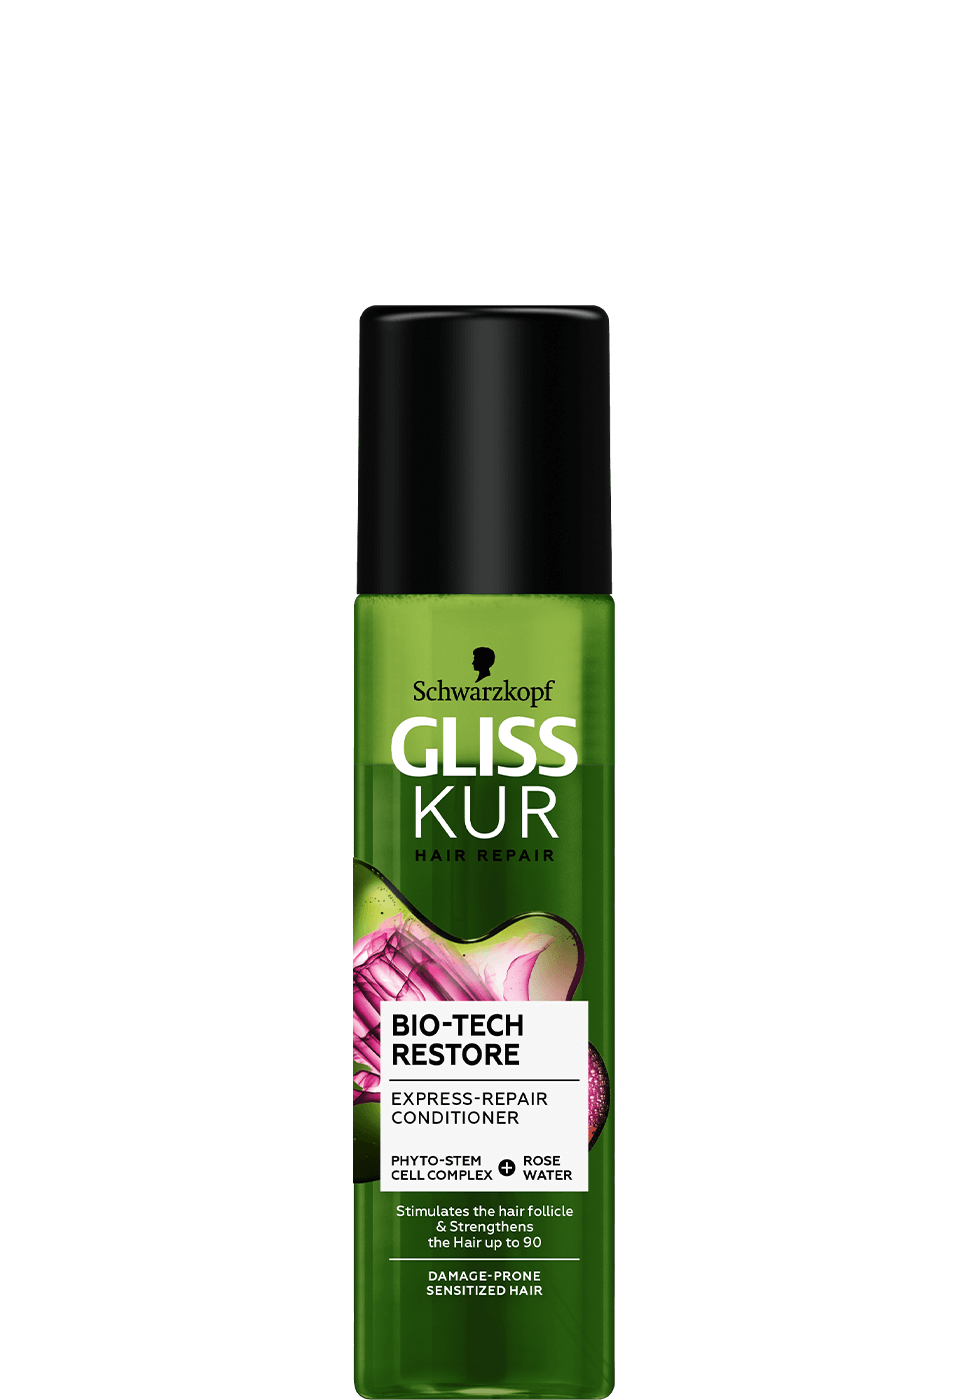 glisskur_com_bio_tech_express_repair_conditioner_970x1400